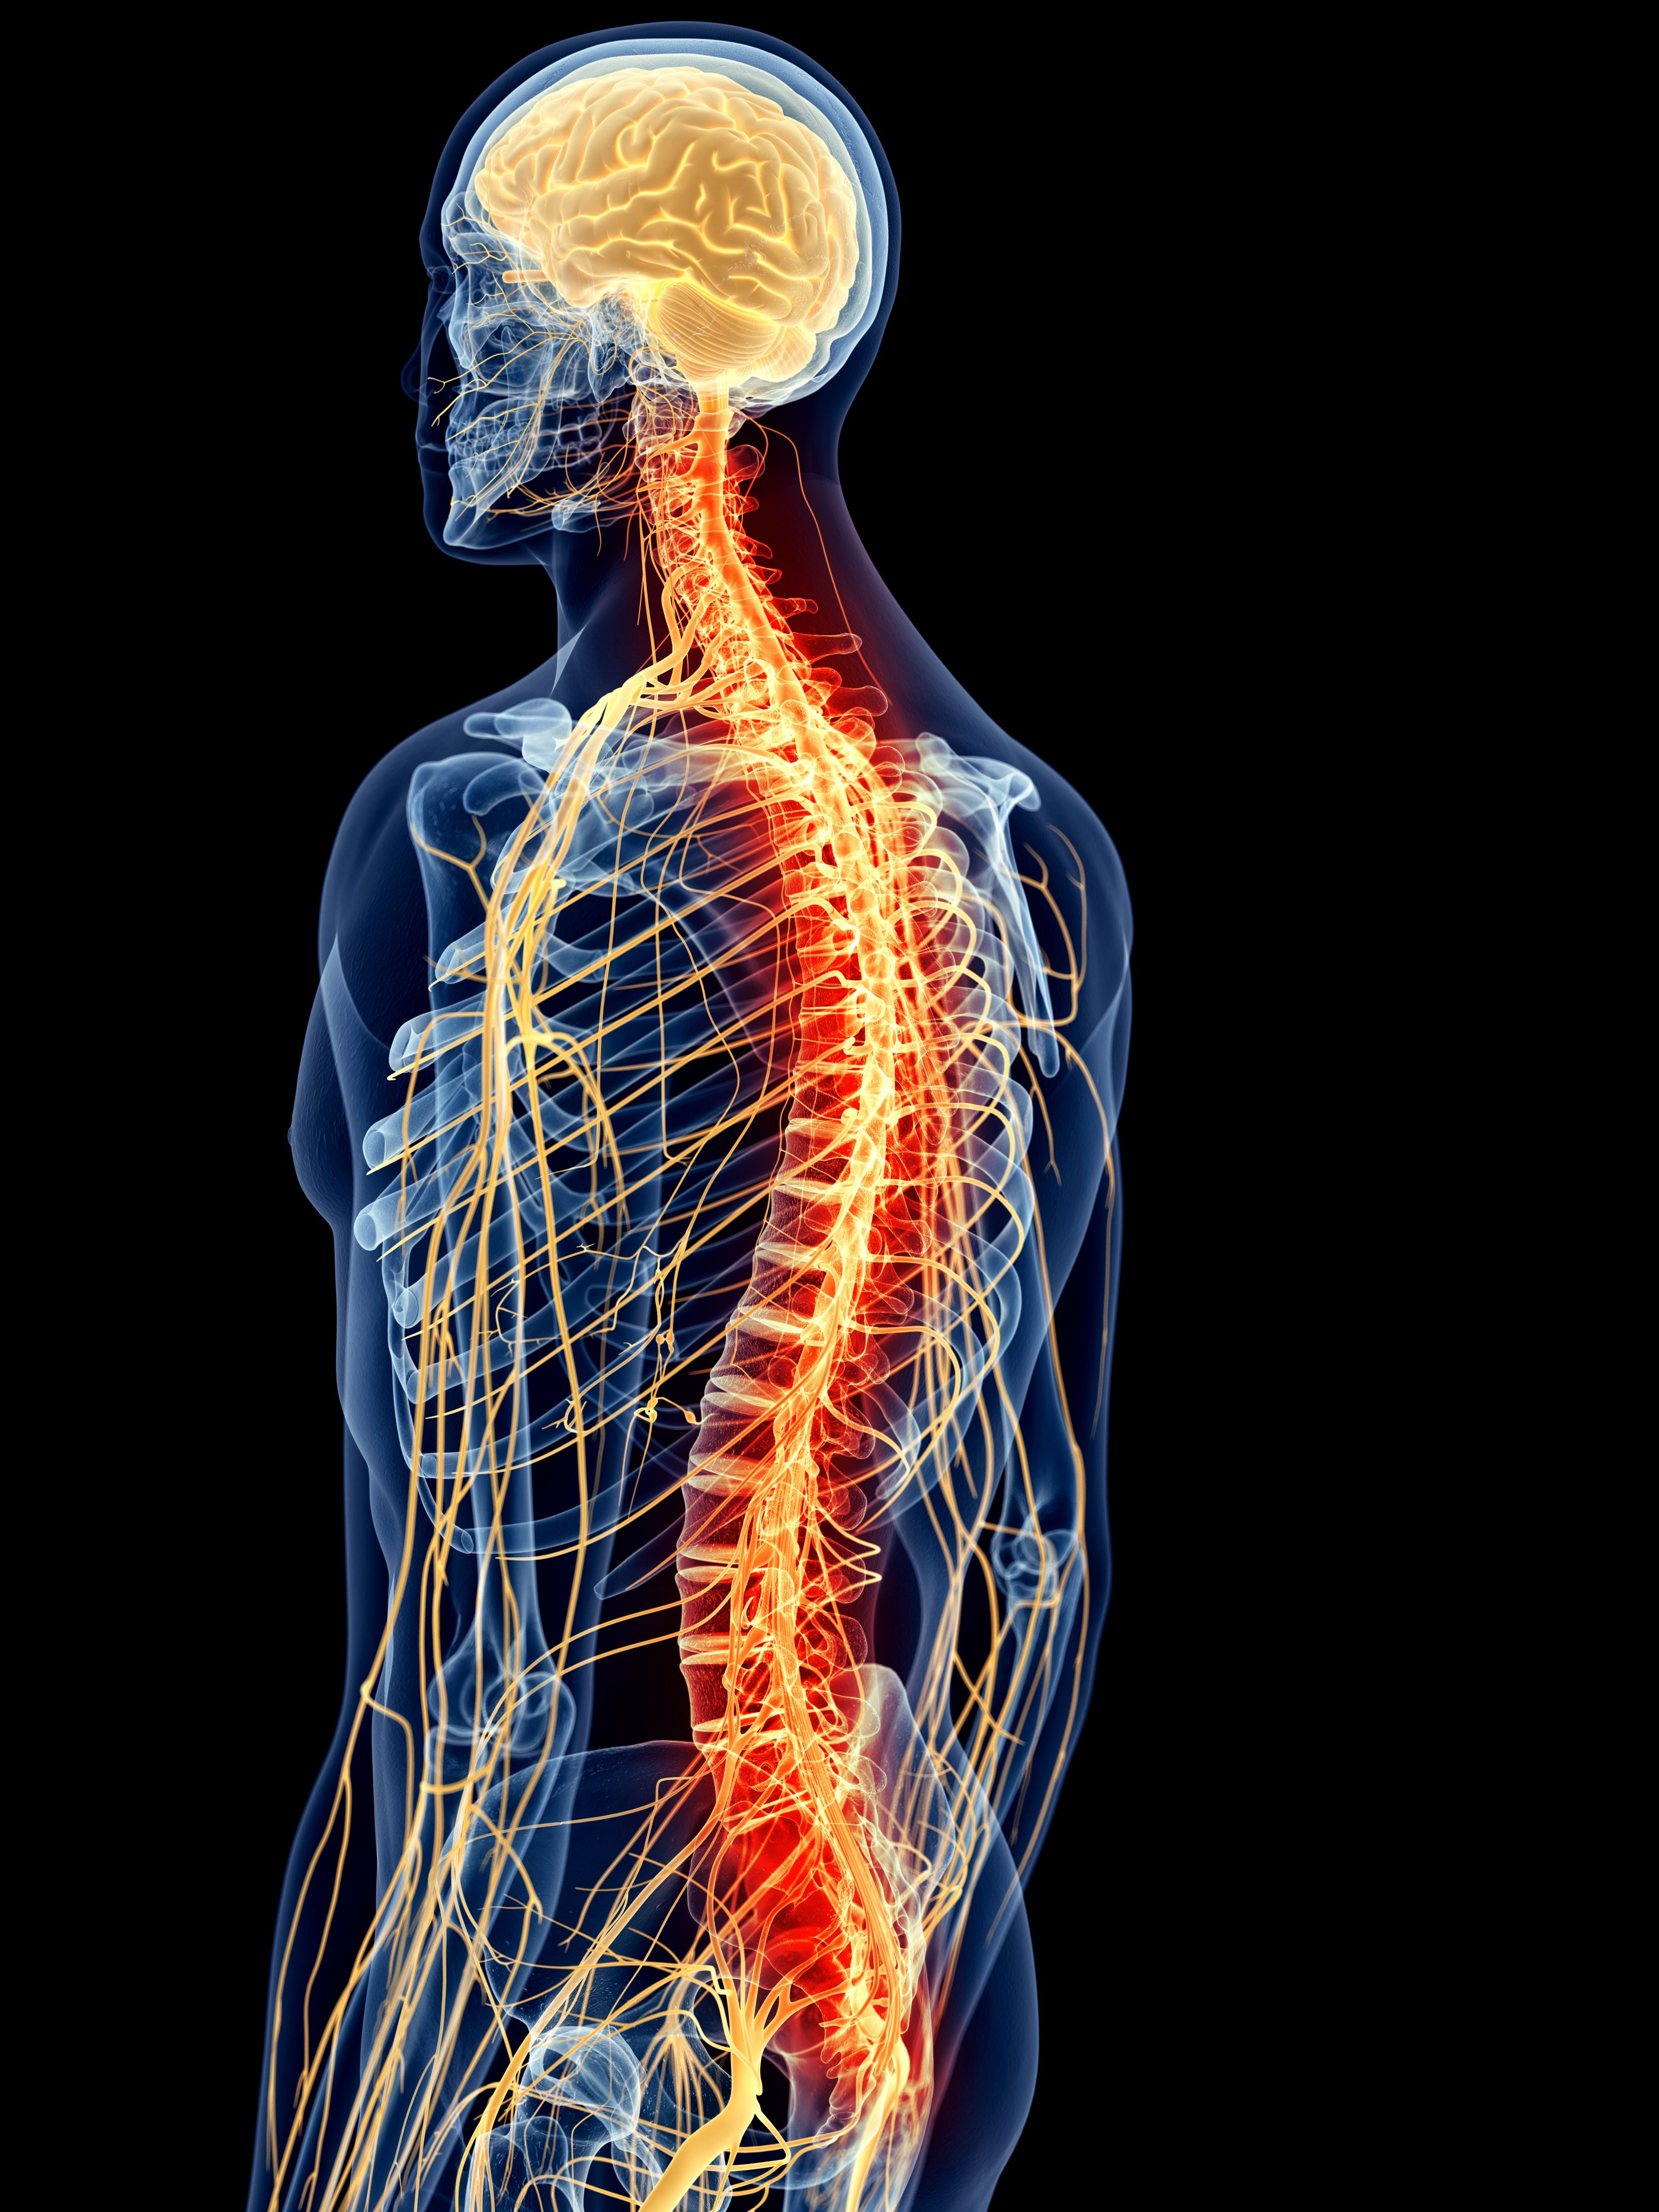 Treating the wounded: neuroprotection strategies in spinal